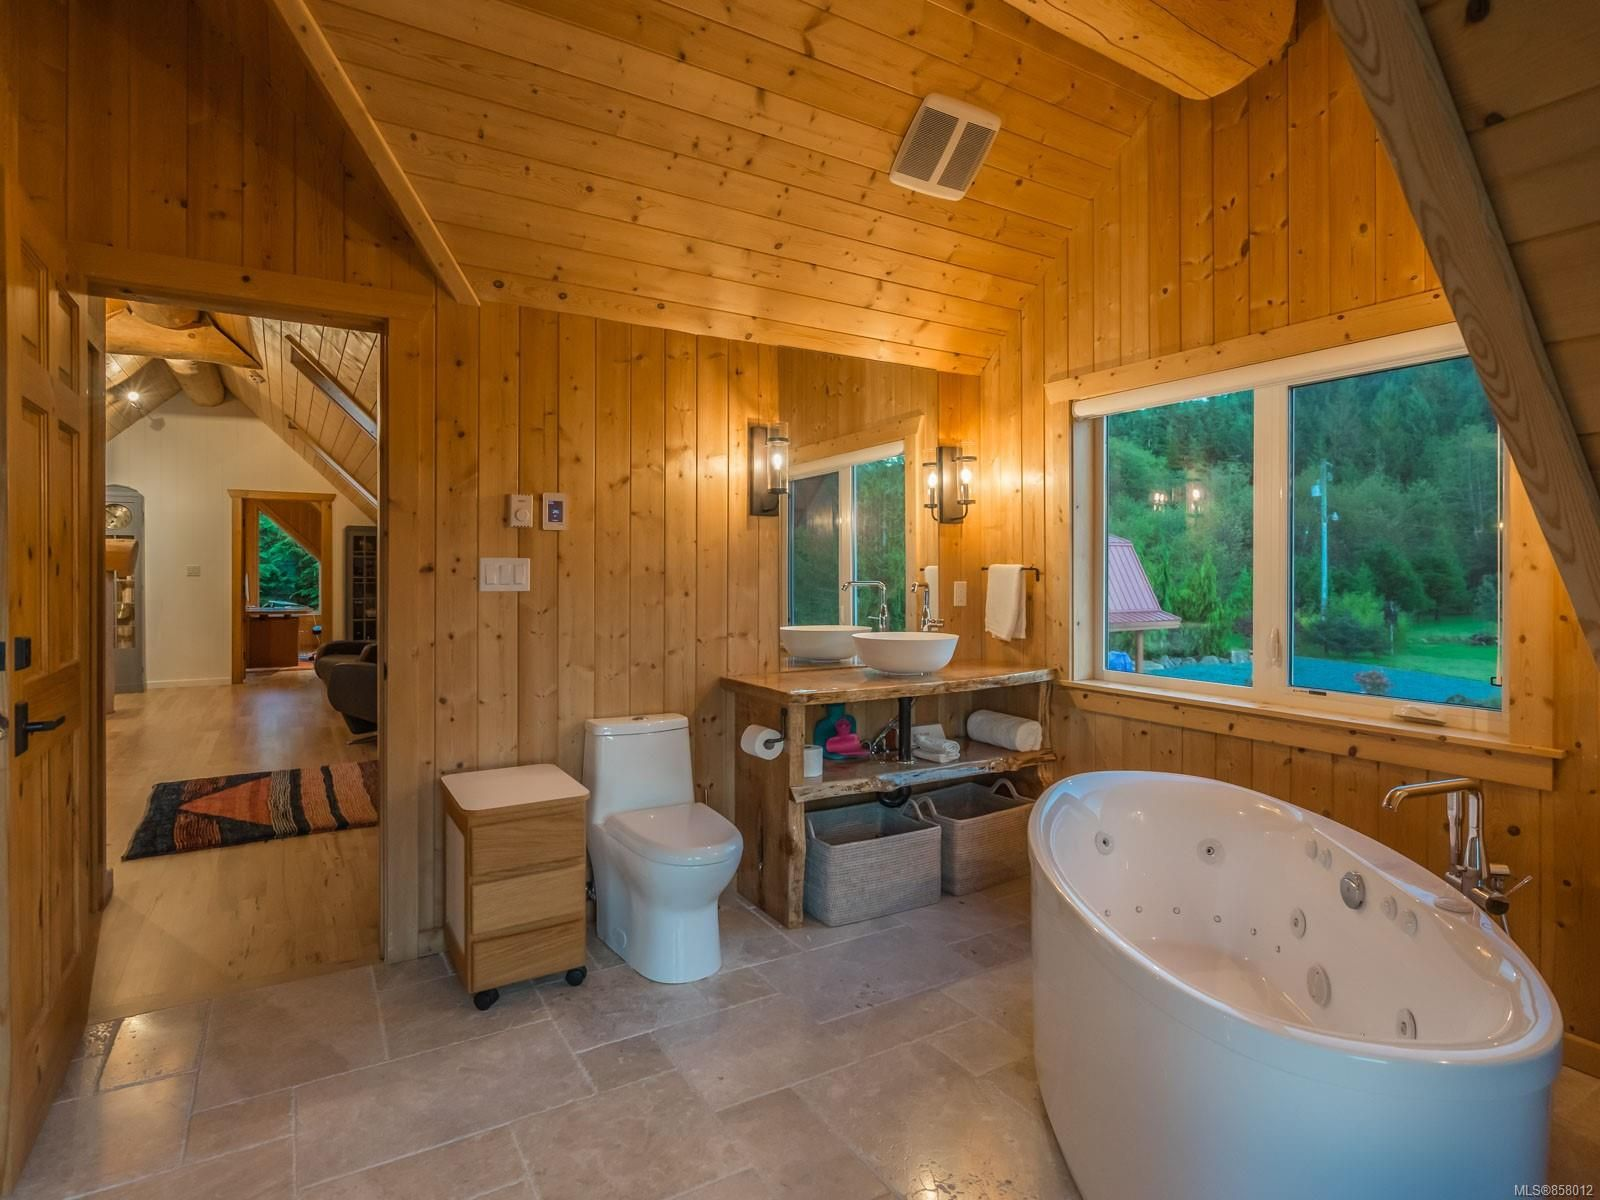 Photo 42: Photos: 6030 MINE Rd in : NI Port McNeill House for sale (North Island)  : MLS®# 858012